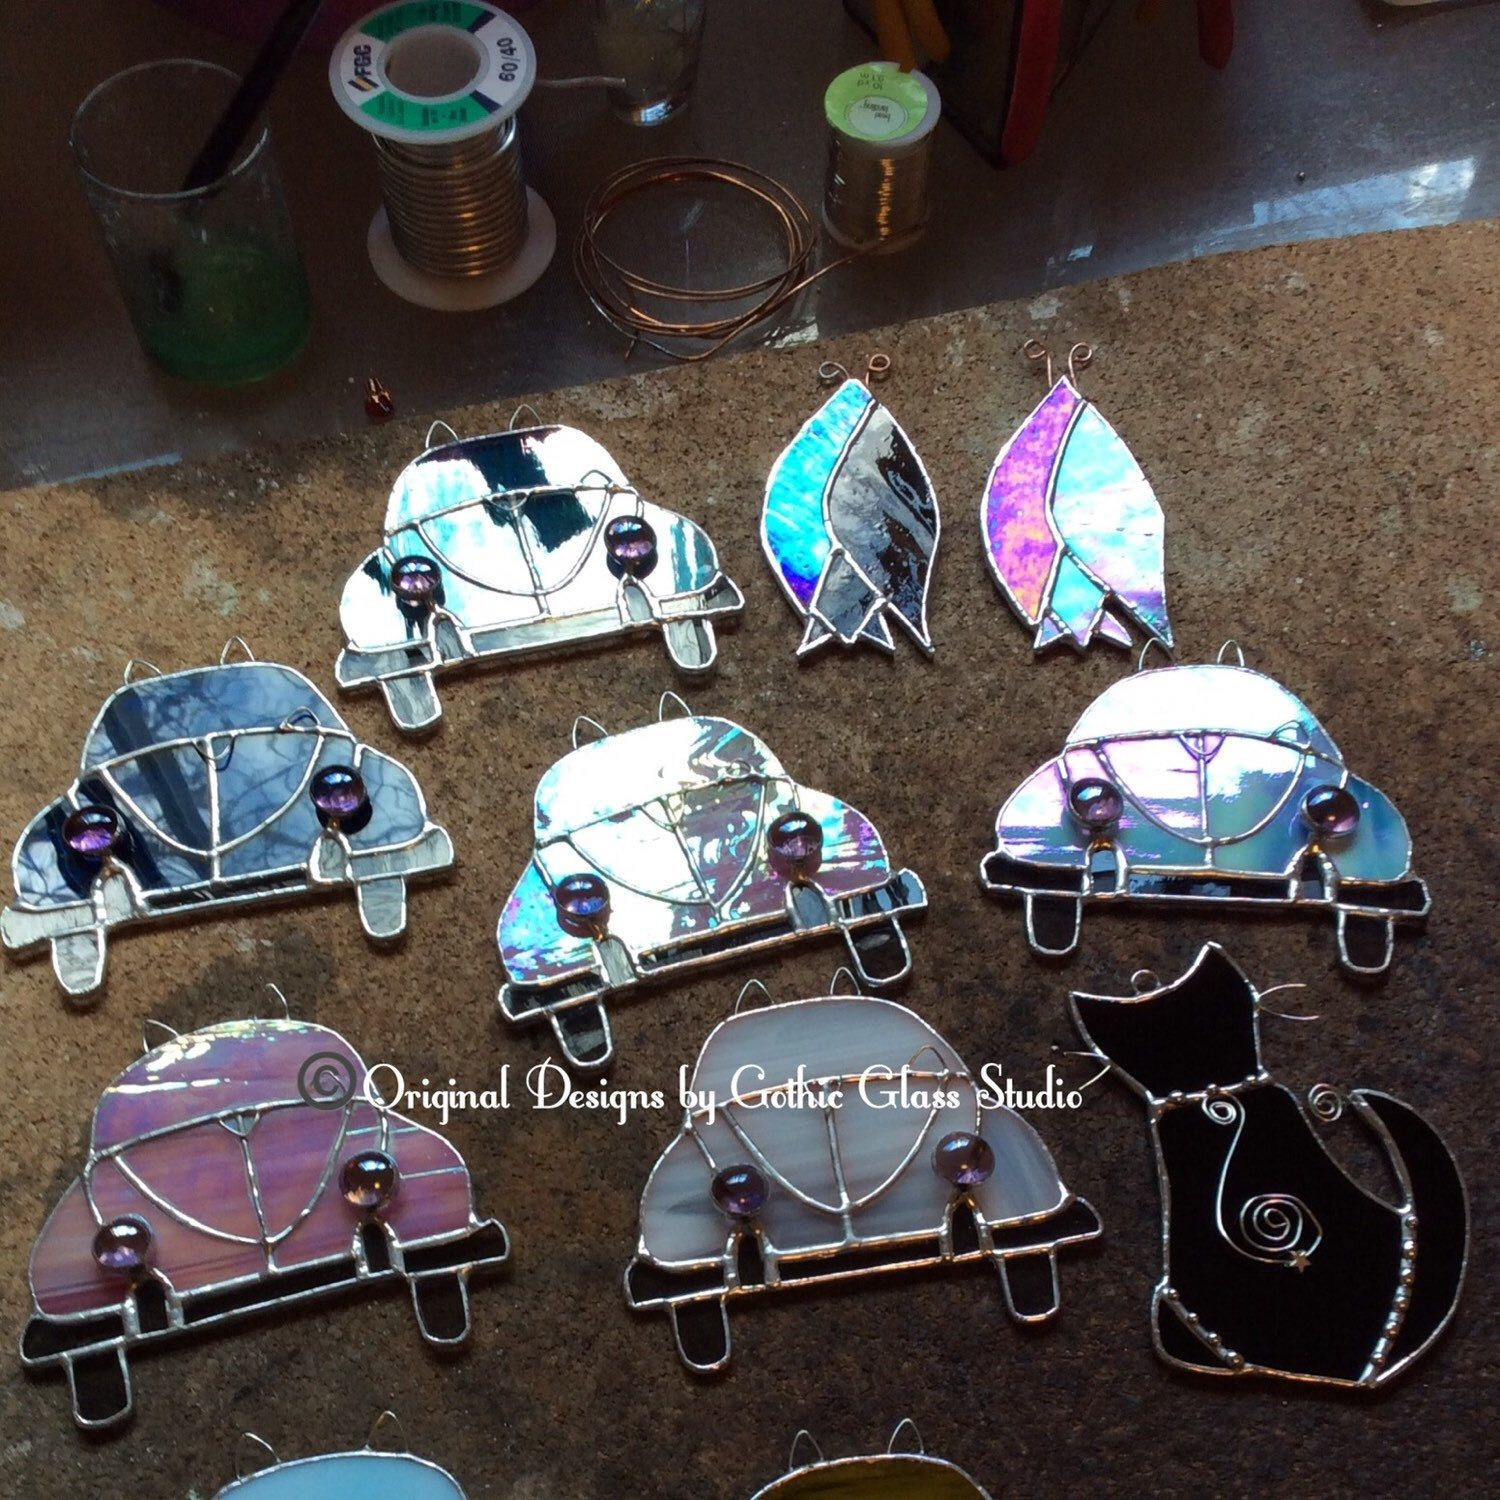 Originally designed stained glass Volkswagen Beetle & cat